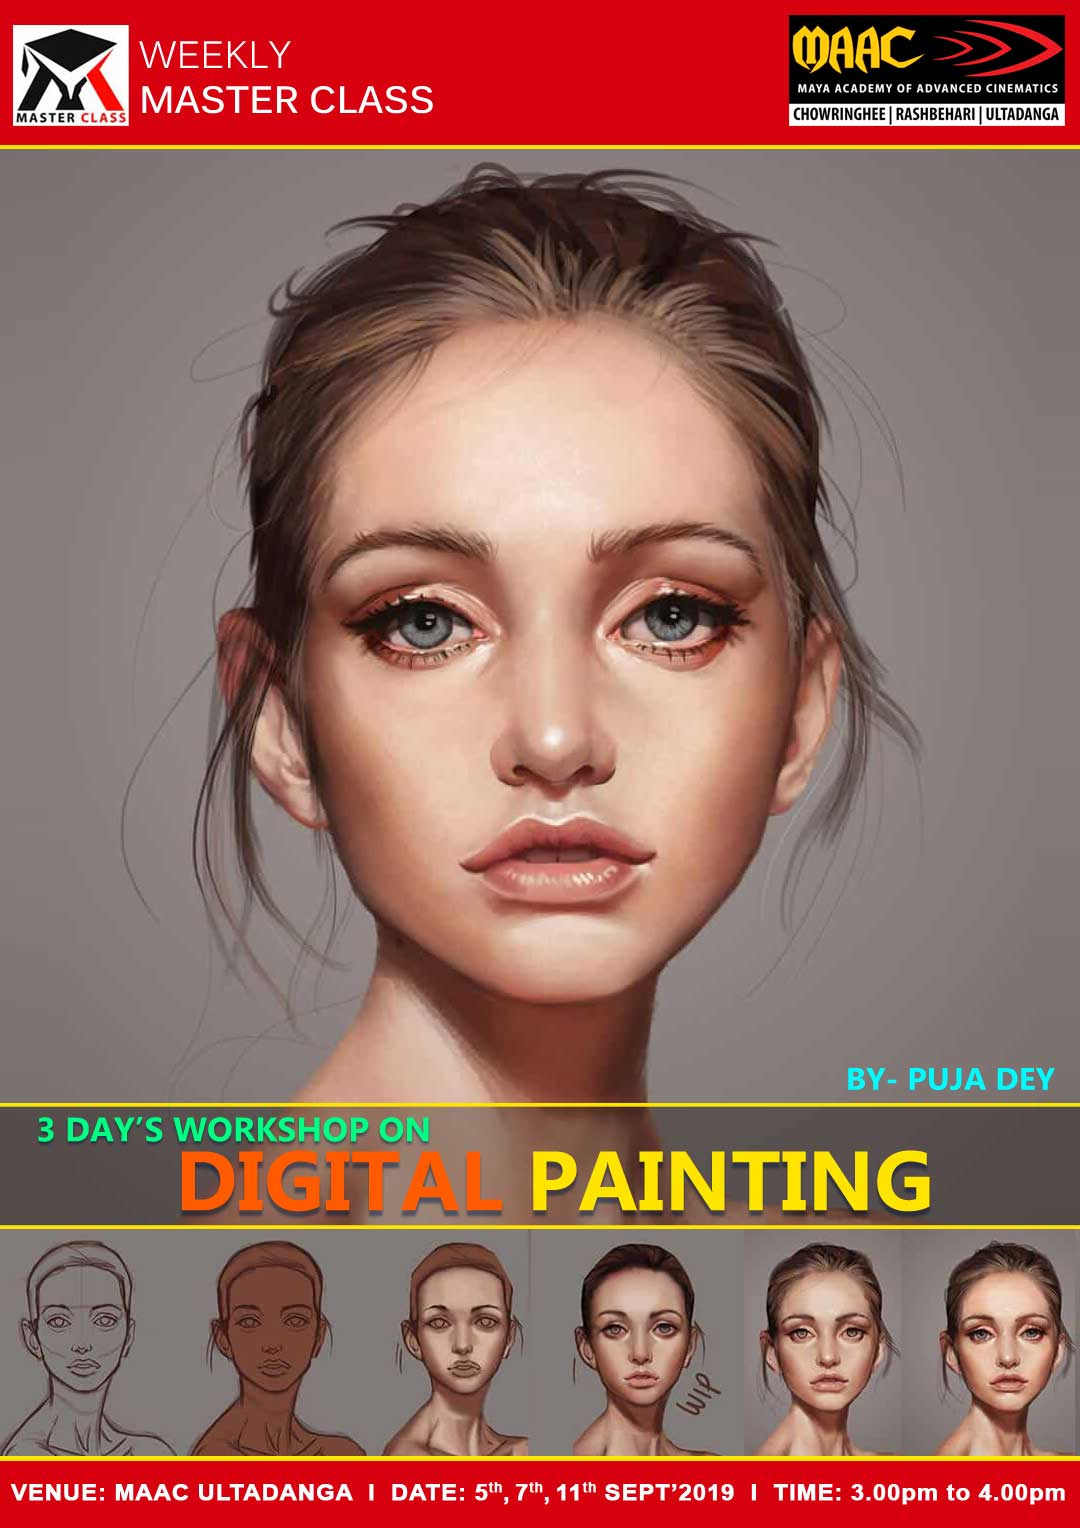 Weekly Master Class on 3 Days Workshop on Digital Painting